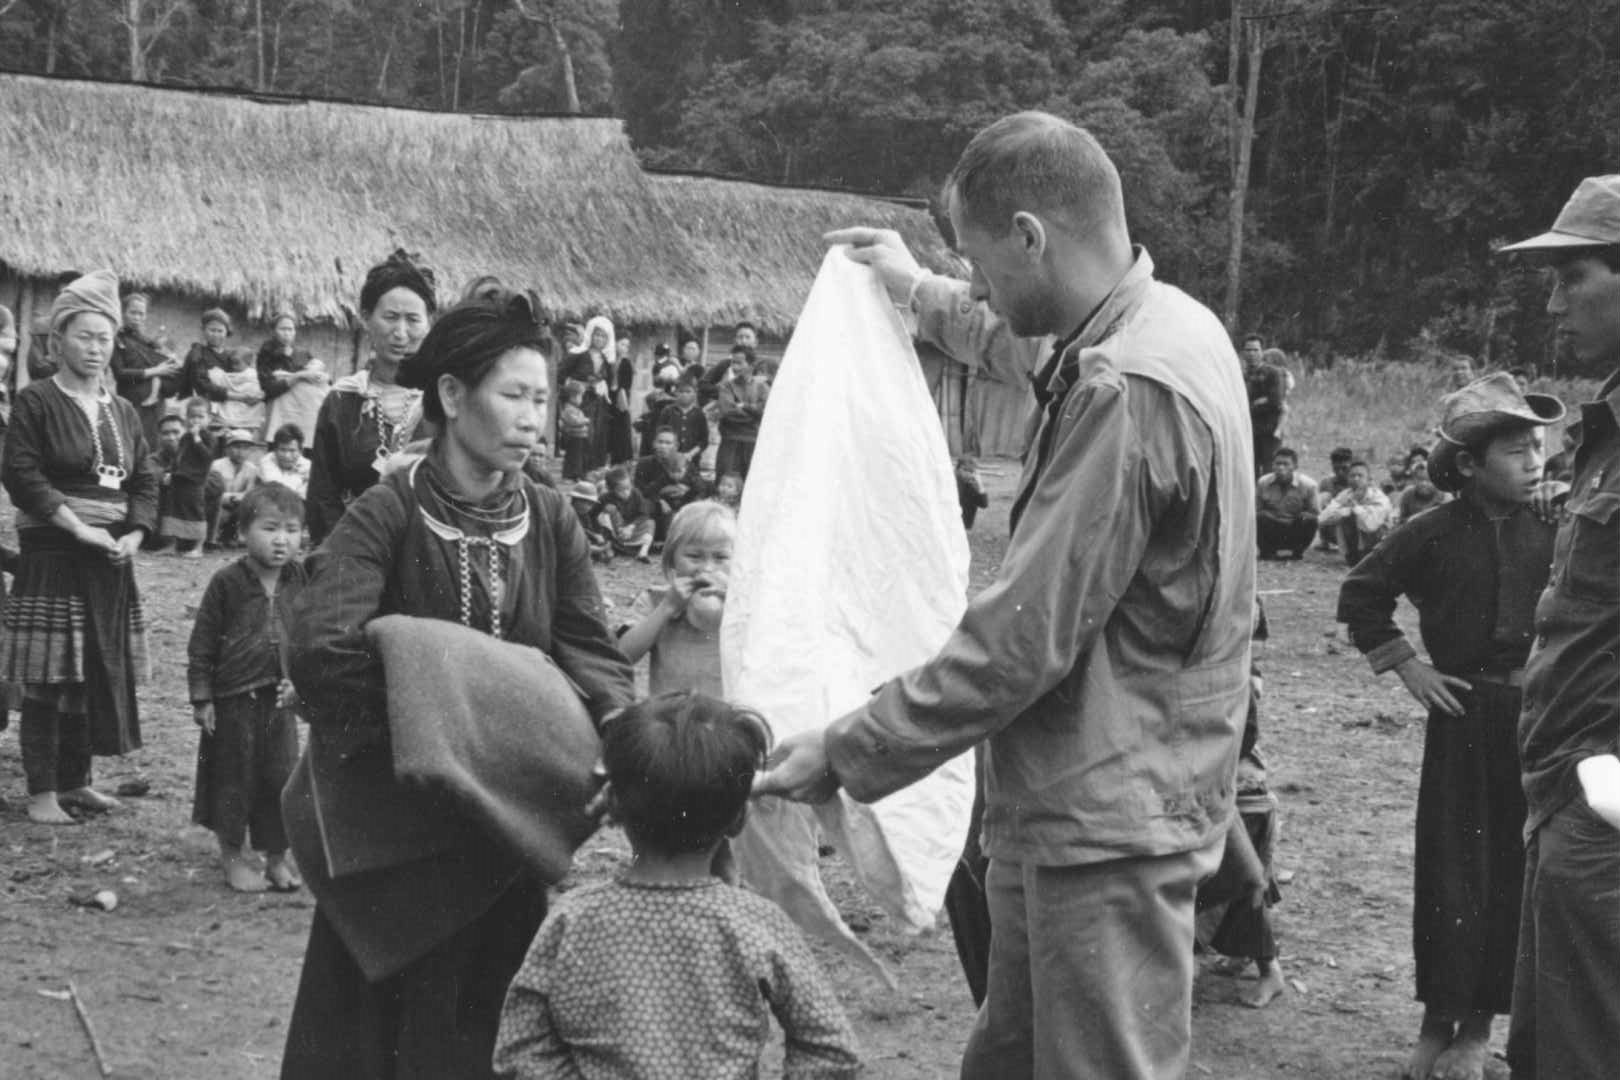 Black and white photograph of Americans distributing relief supplies to Hmong villagers